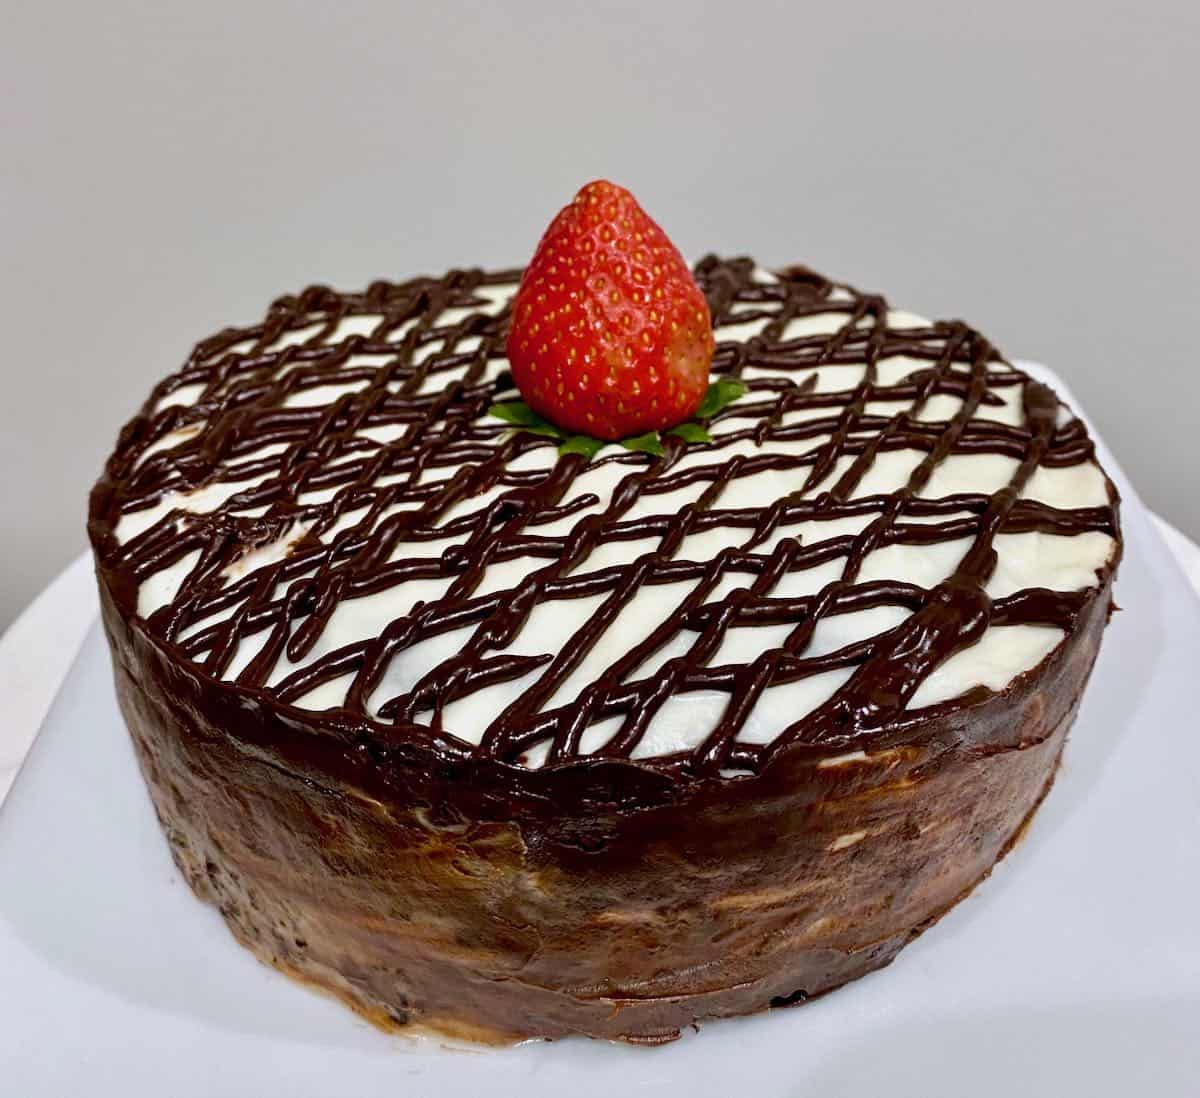 sous vide chocolate cake with strawberry on top